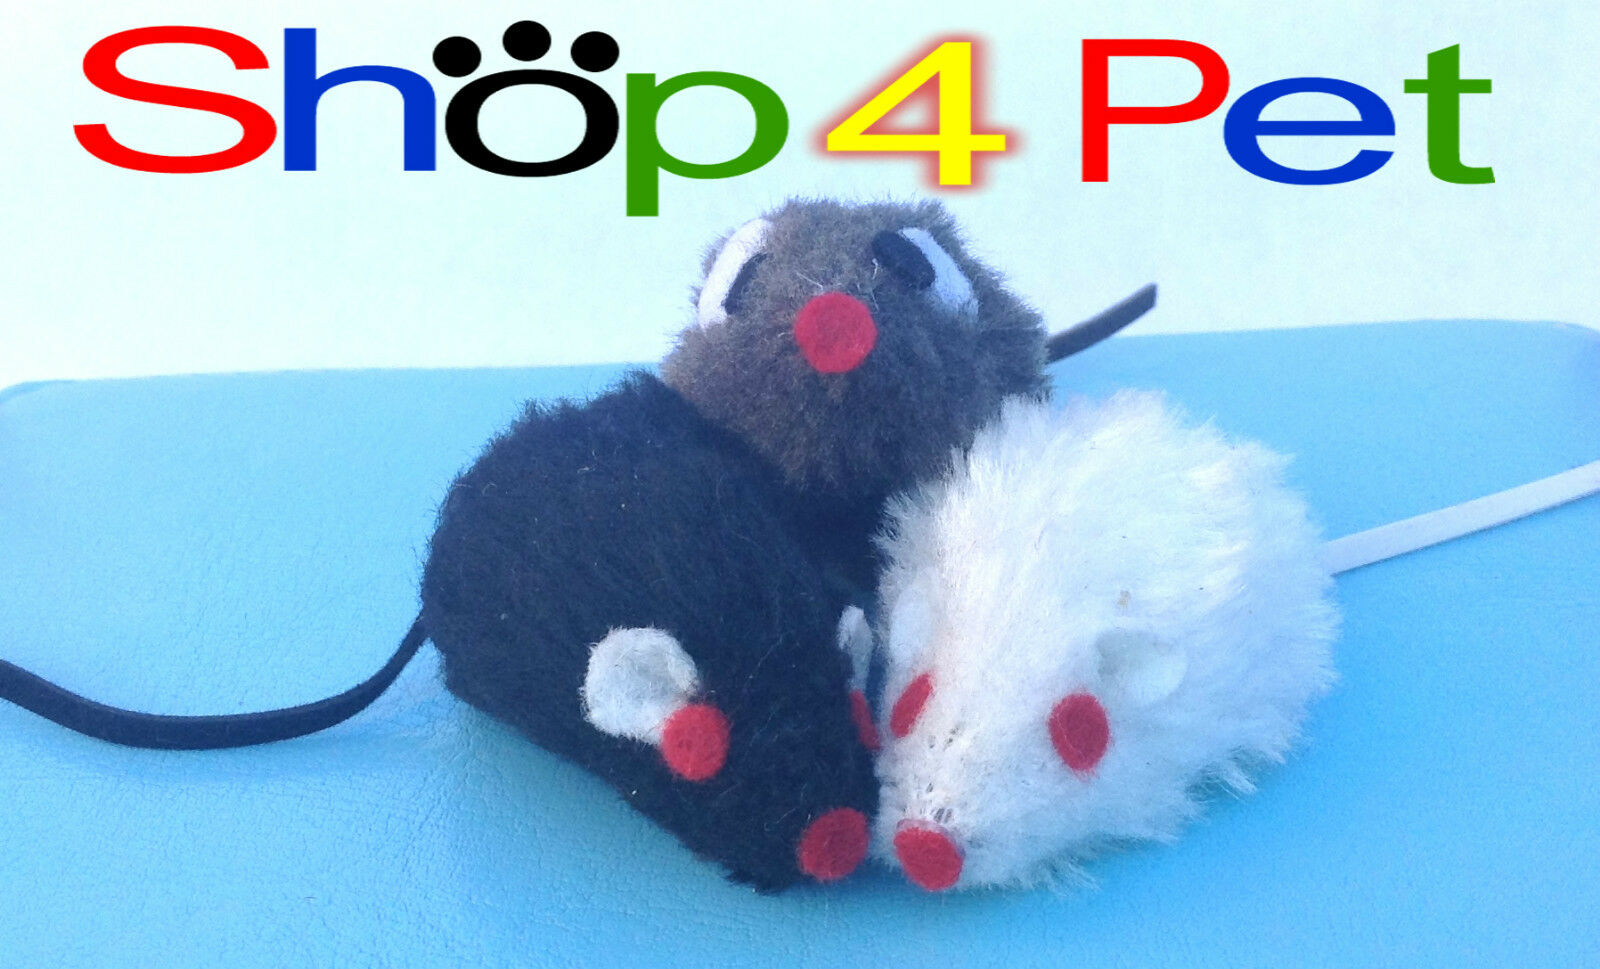 Cat Toy Mouse, in Black White or Grey, with Bell inside for your Cats Enjoyment.